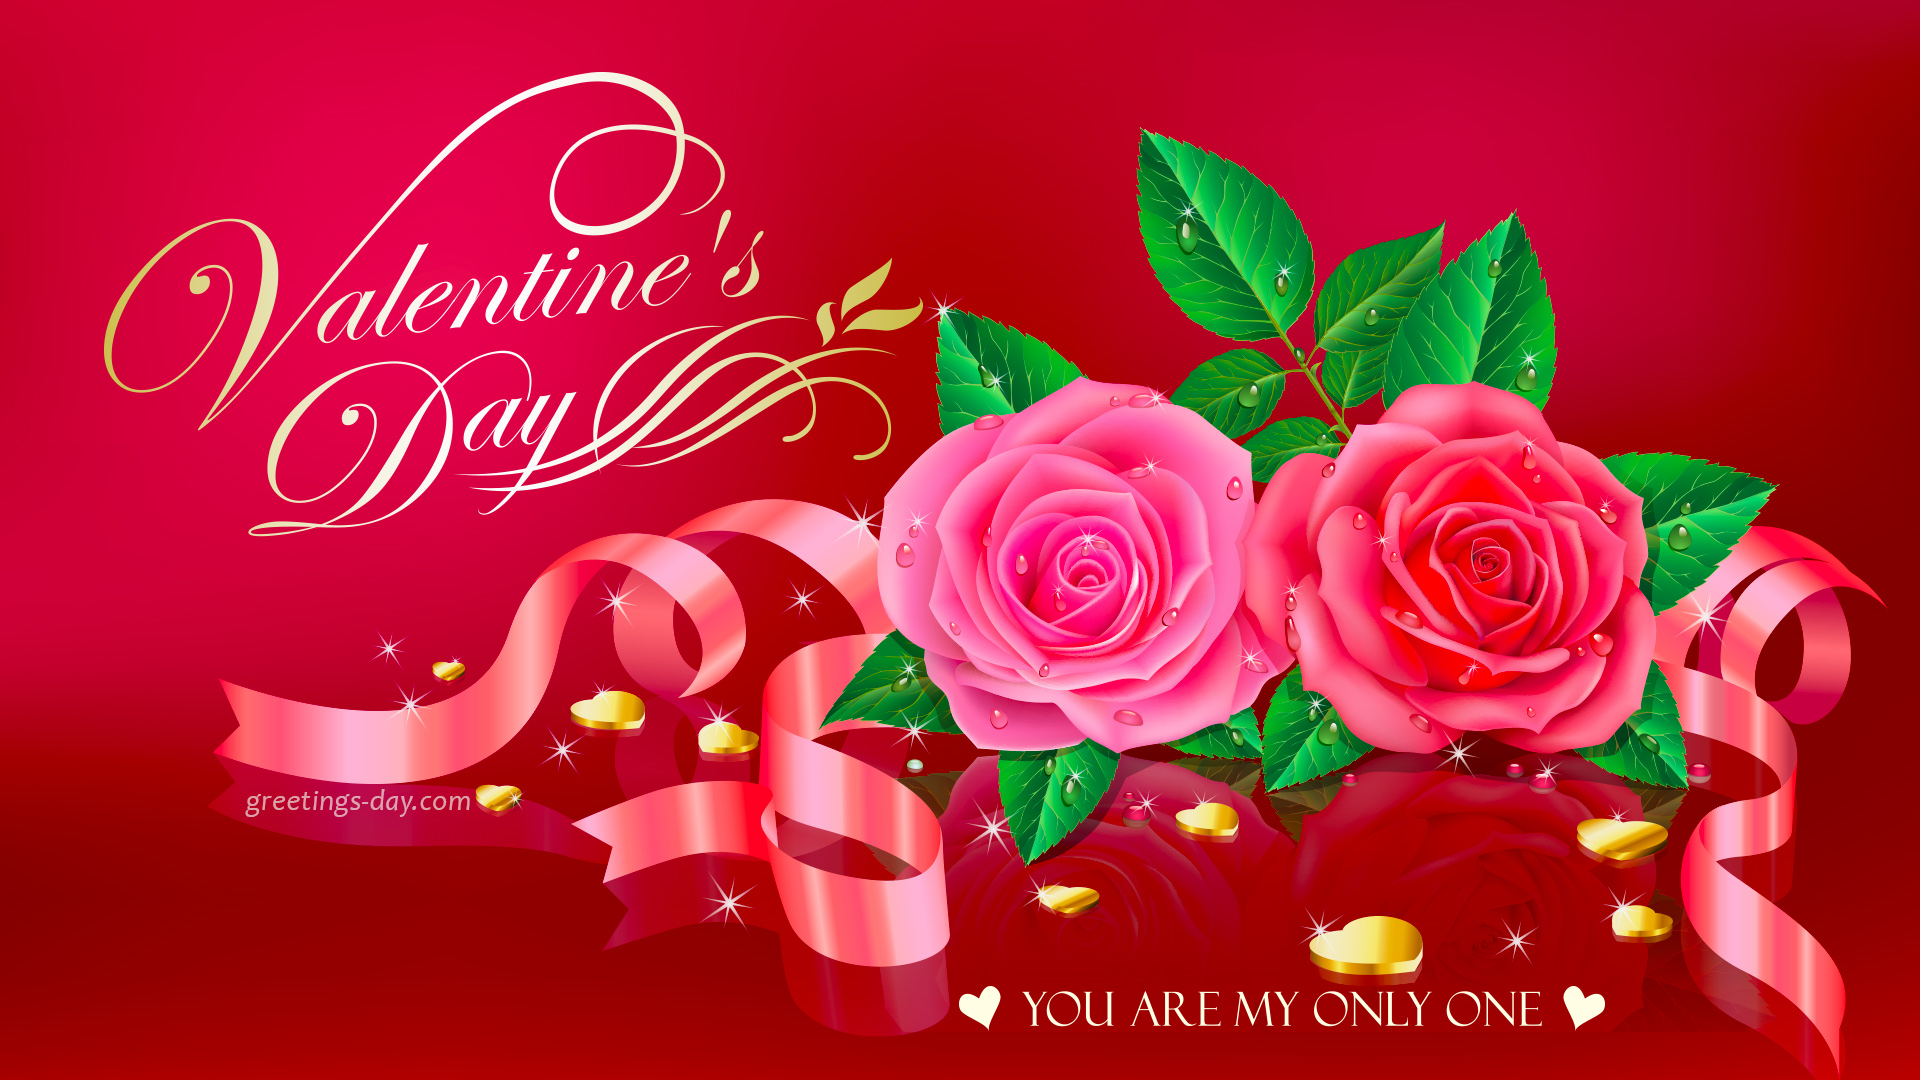 ValentineS Day For Lover Best For Friends For Husband For